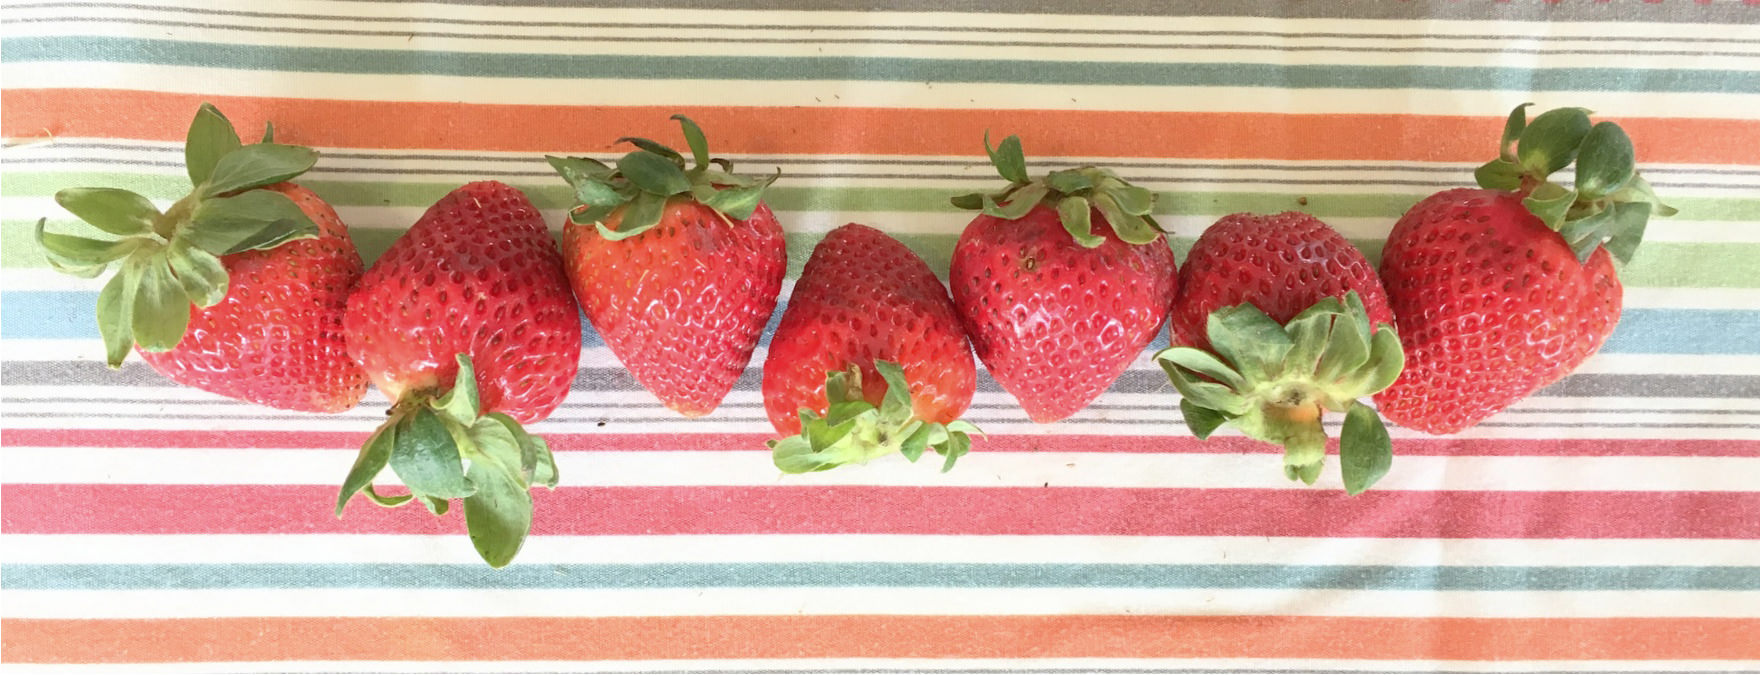 a line of strawberries